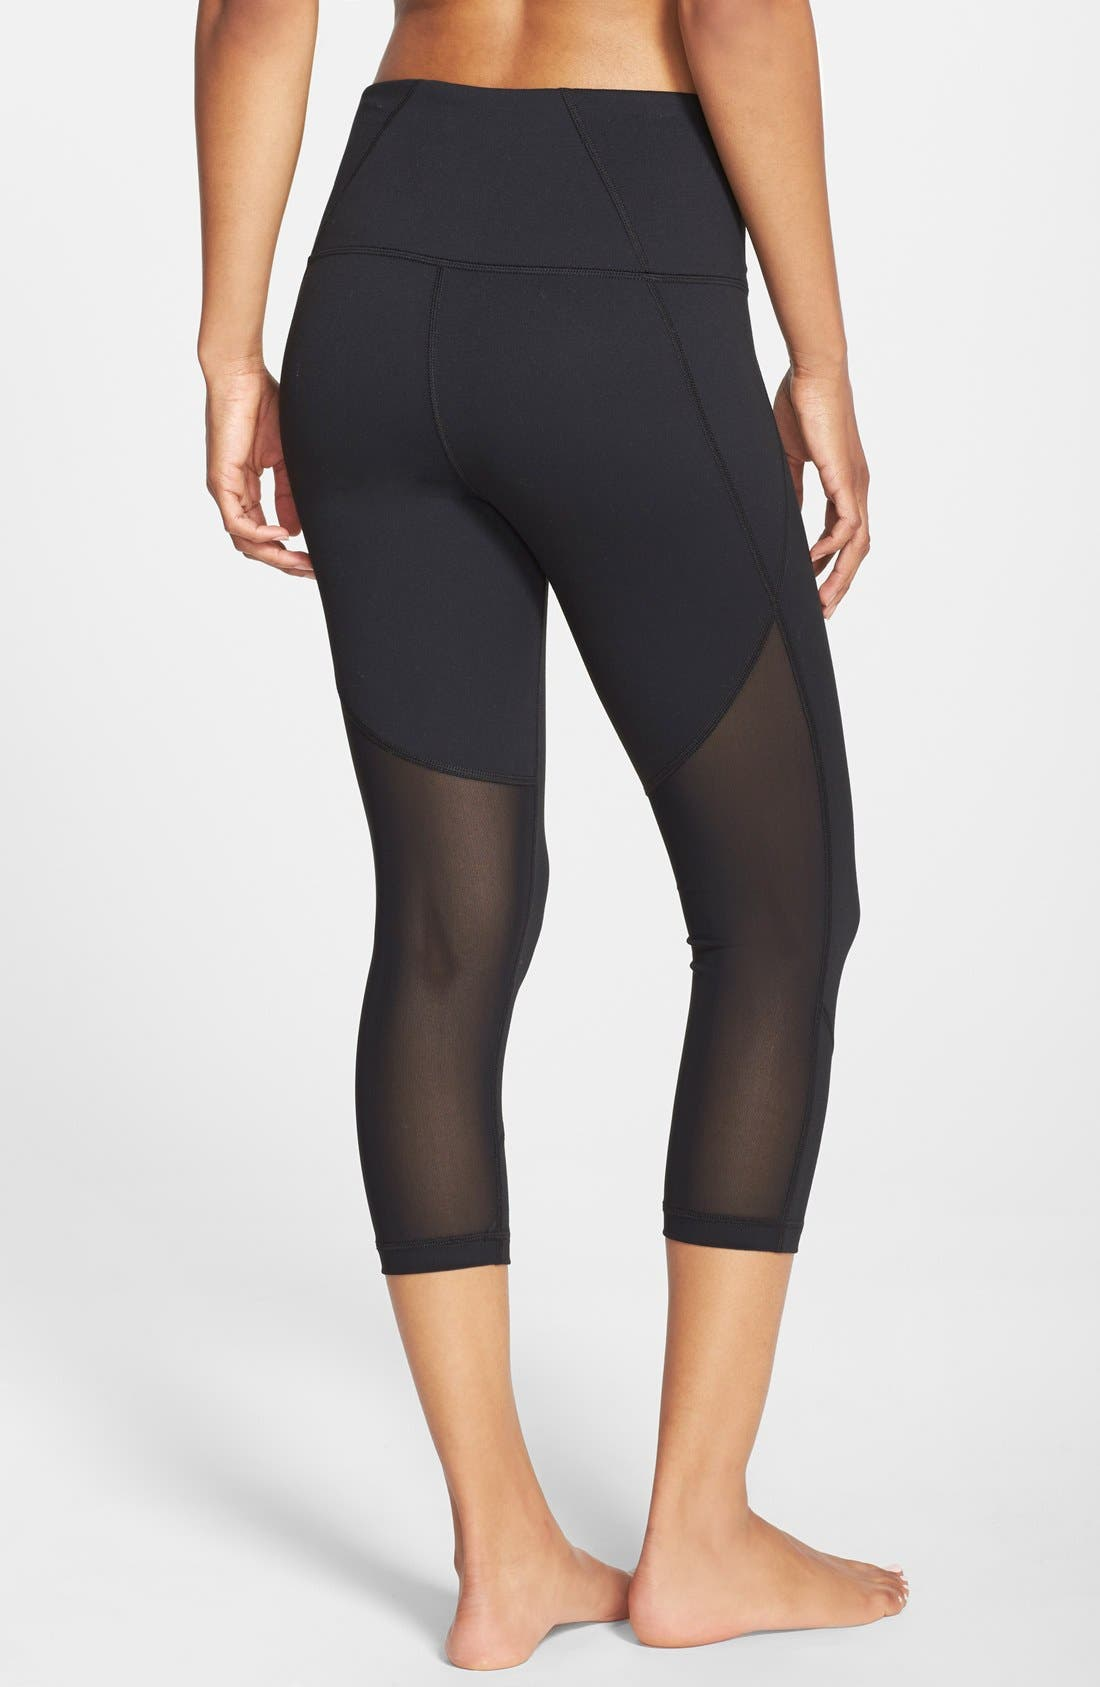 Alternate Image 1 Selected - Zella 'Live In - Sultry' High Waist Mesh Crop Leggings